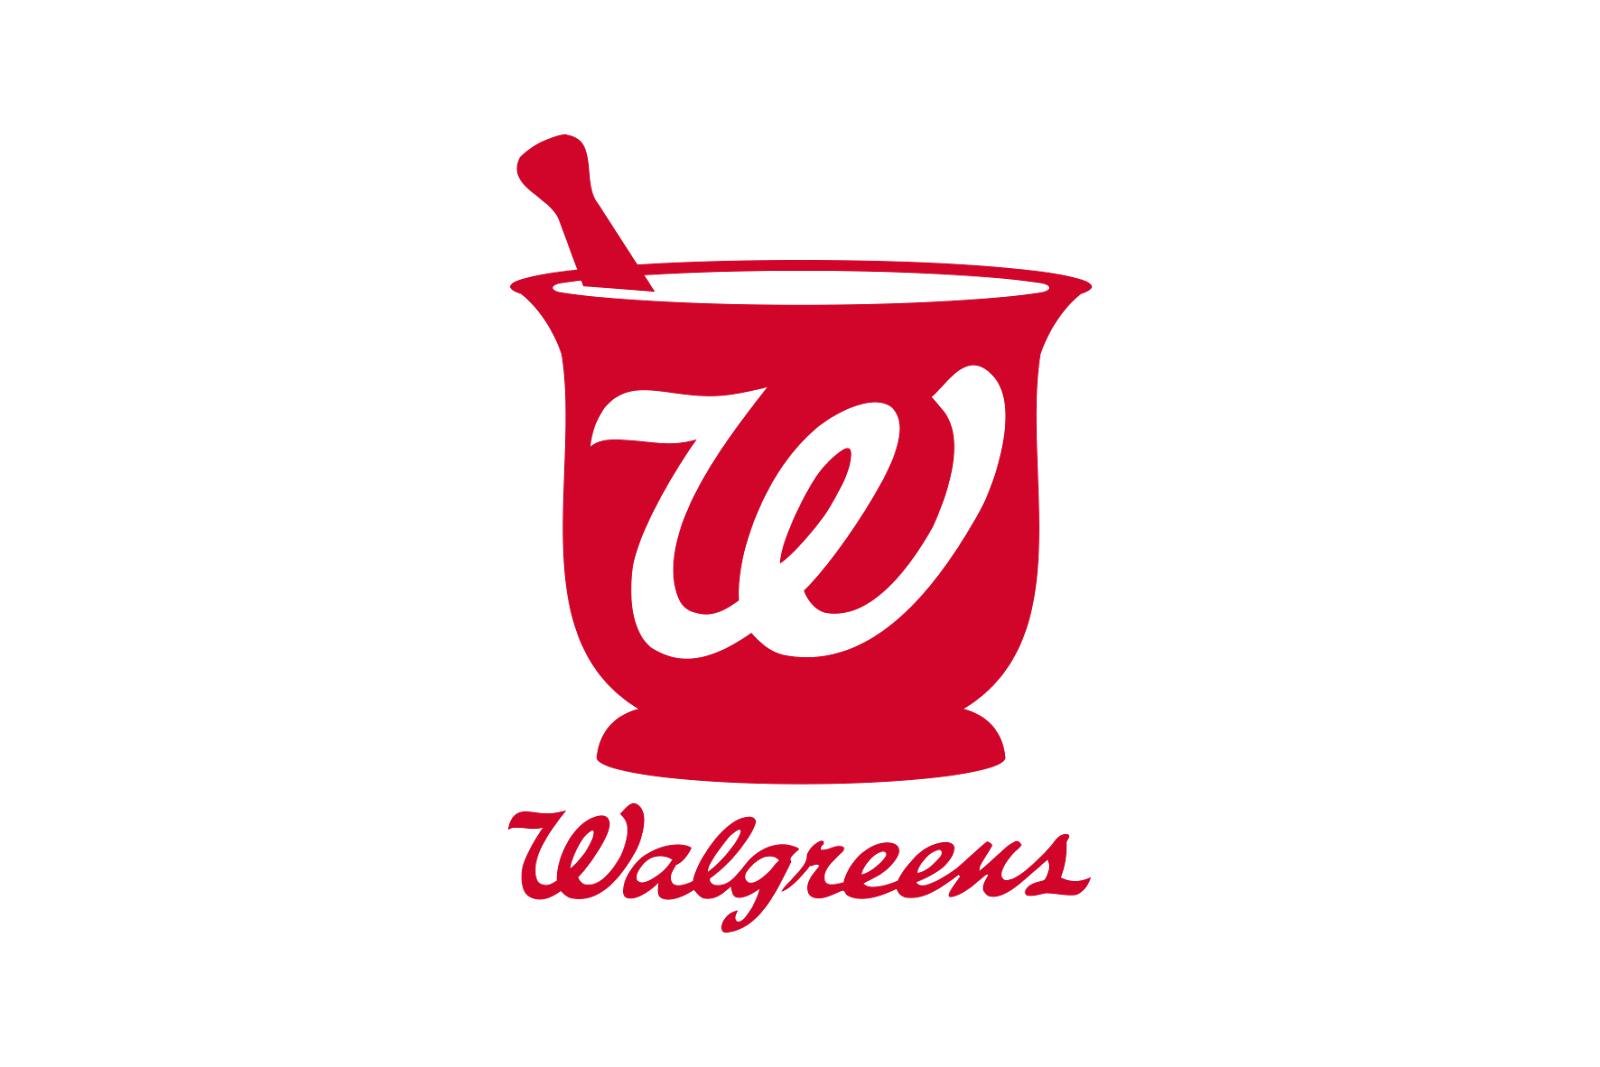 access careers has an affiliation agreement with walgreens upon graduation of our pharmacy technician program and successfully passing the excpt exam